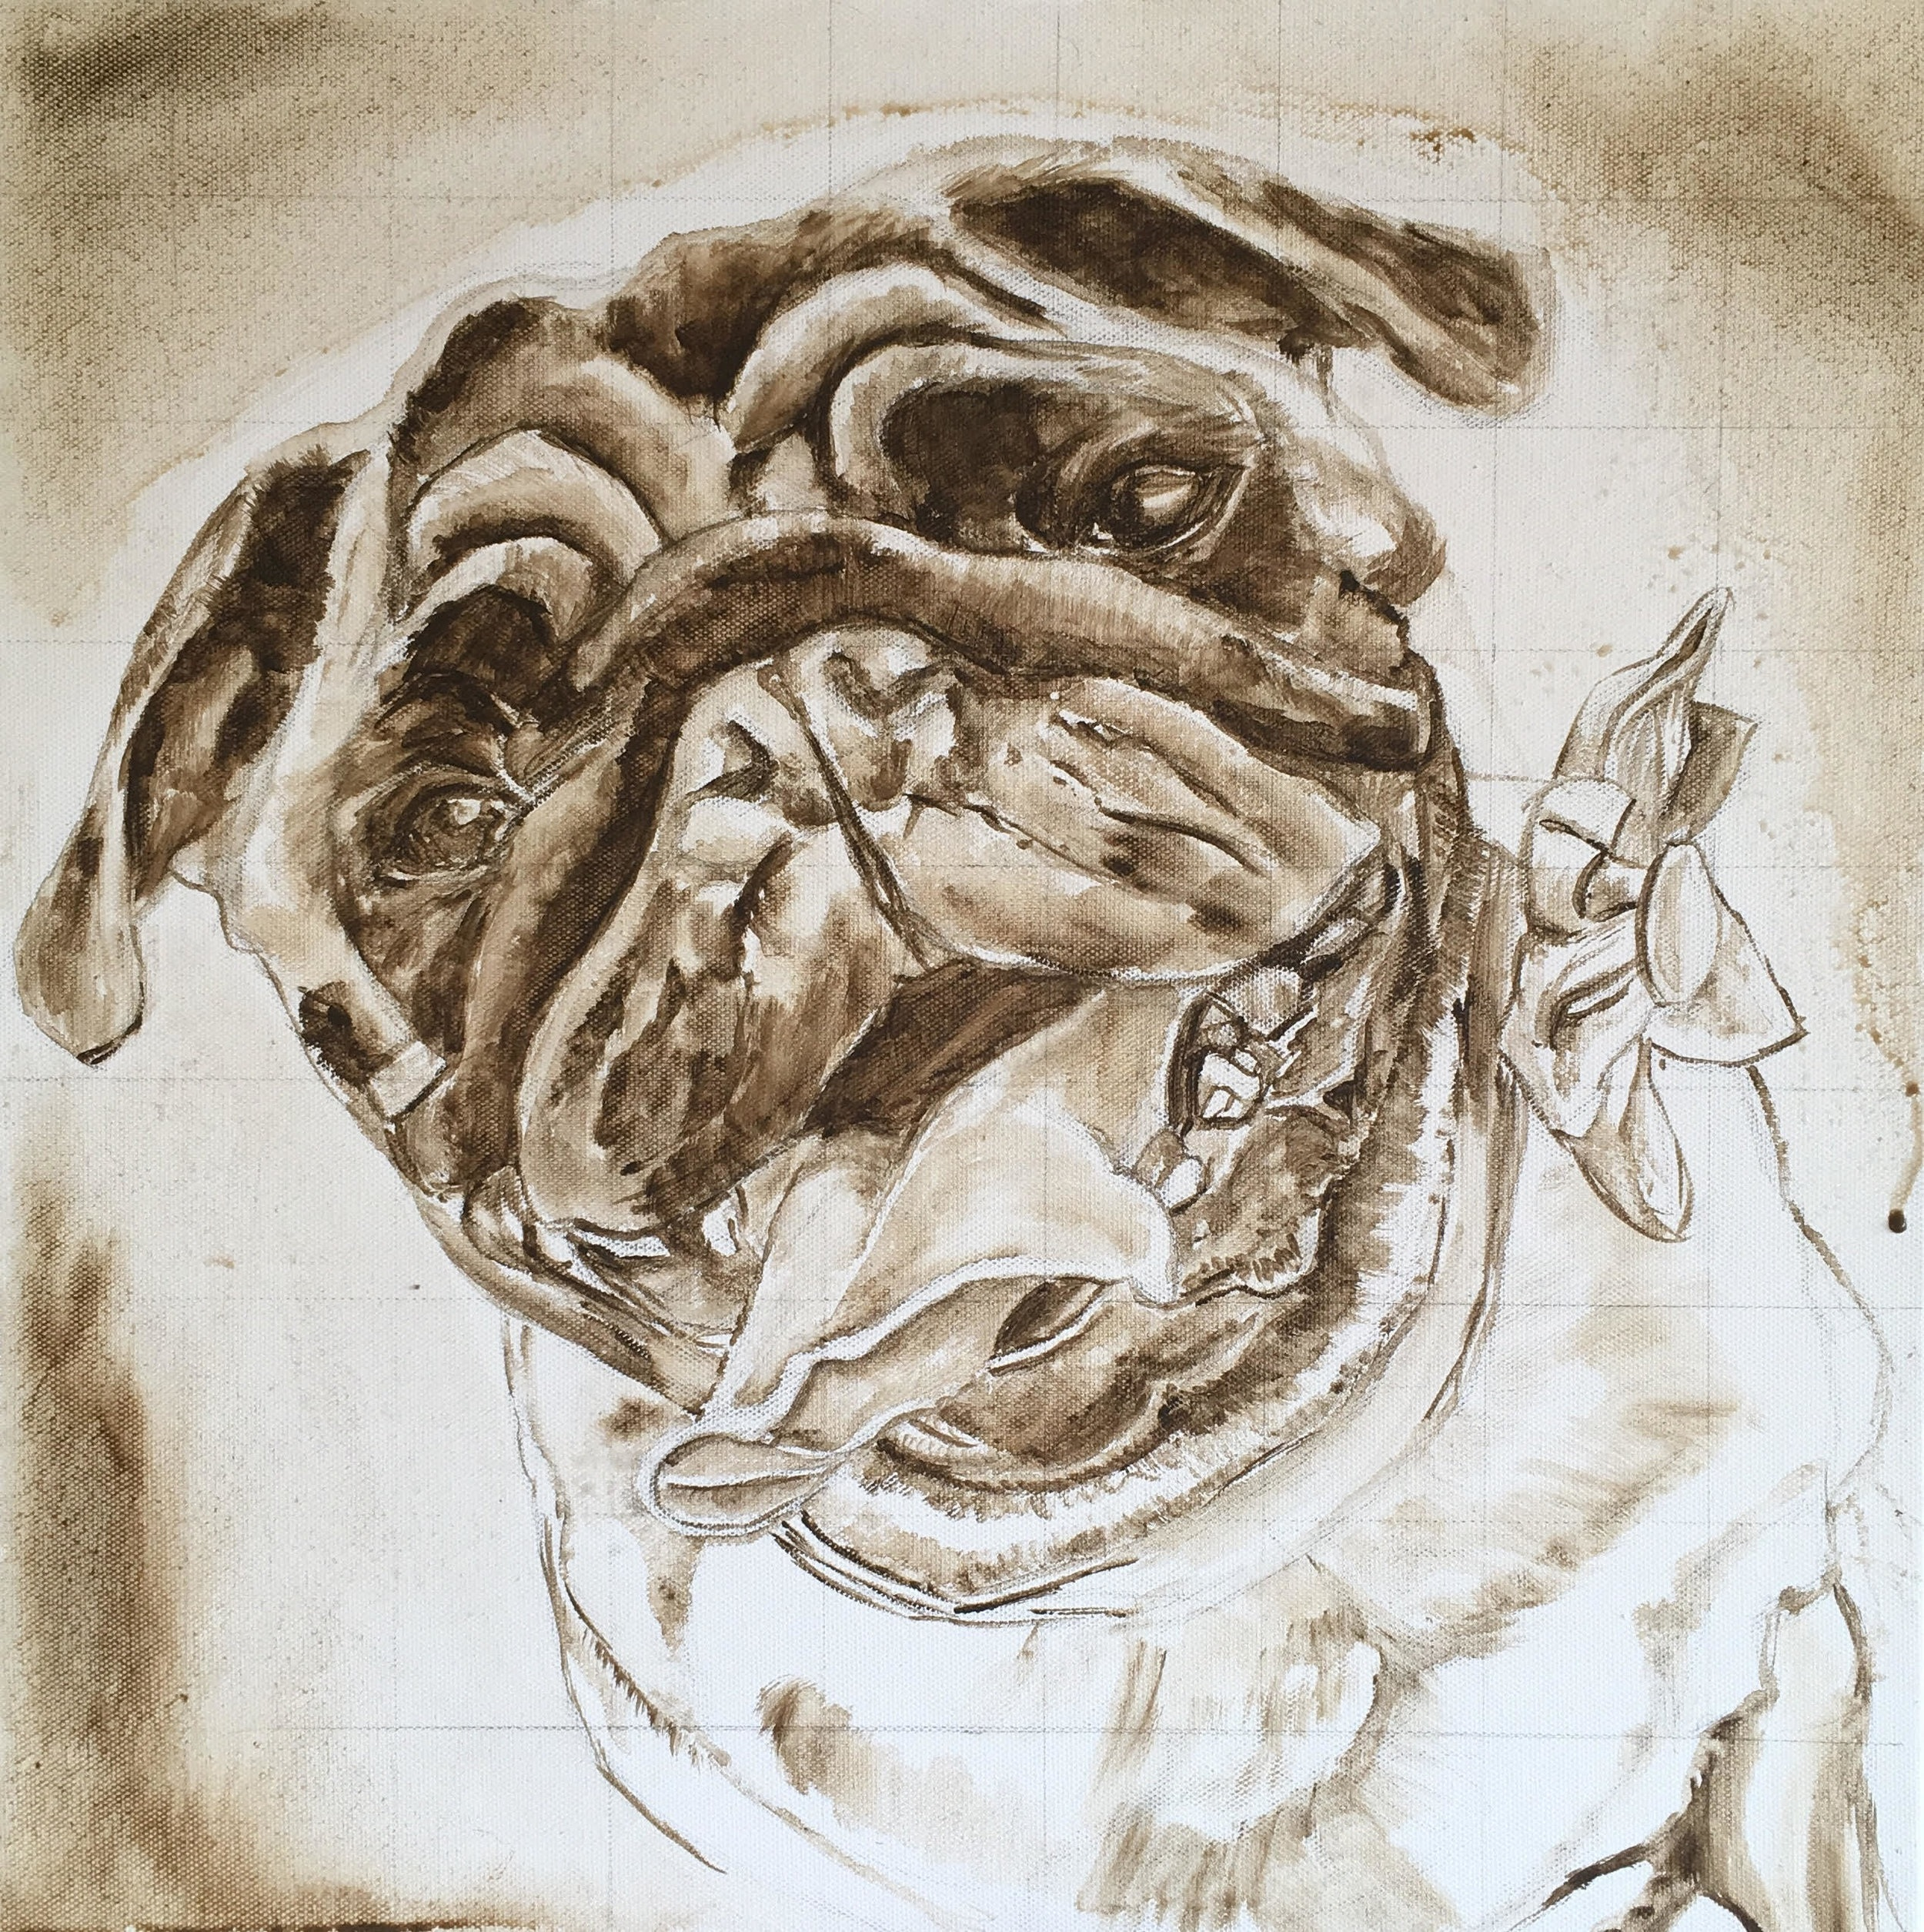 DOG CUSTOM PORTRAIT. TONAL UNDERPAINTING OF TILLY THE PUG BY OPAL PASTRO ART